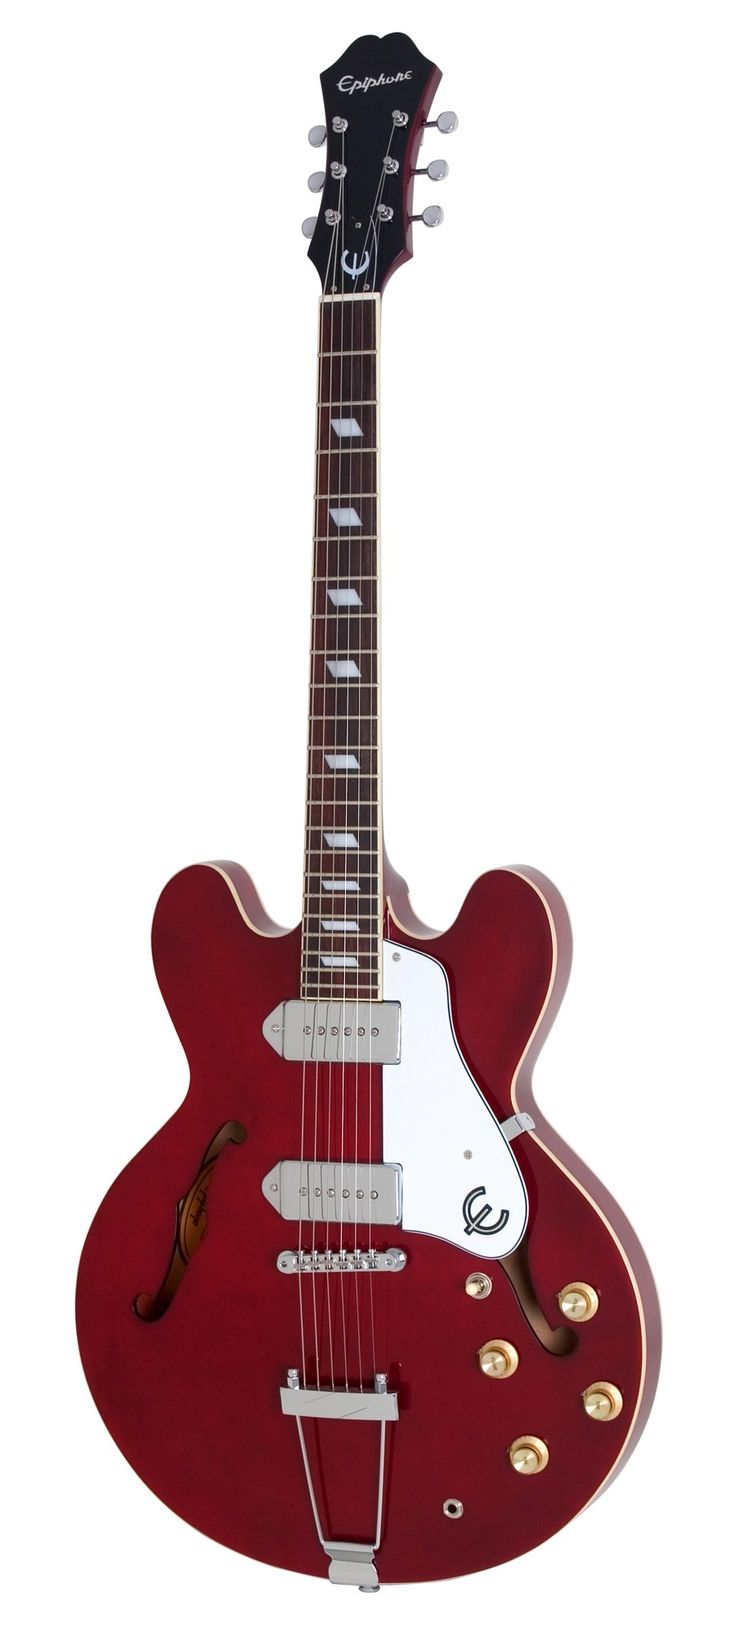 15 Best Epiphone Images On Pinterest Musical Instruments Electric